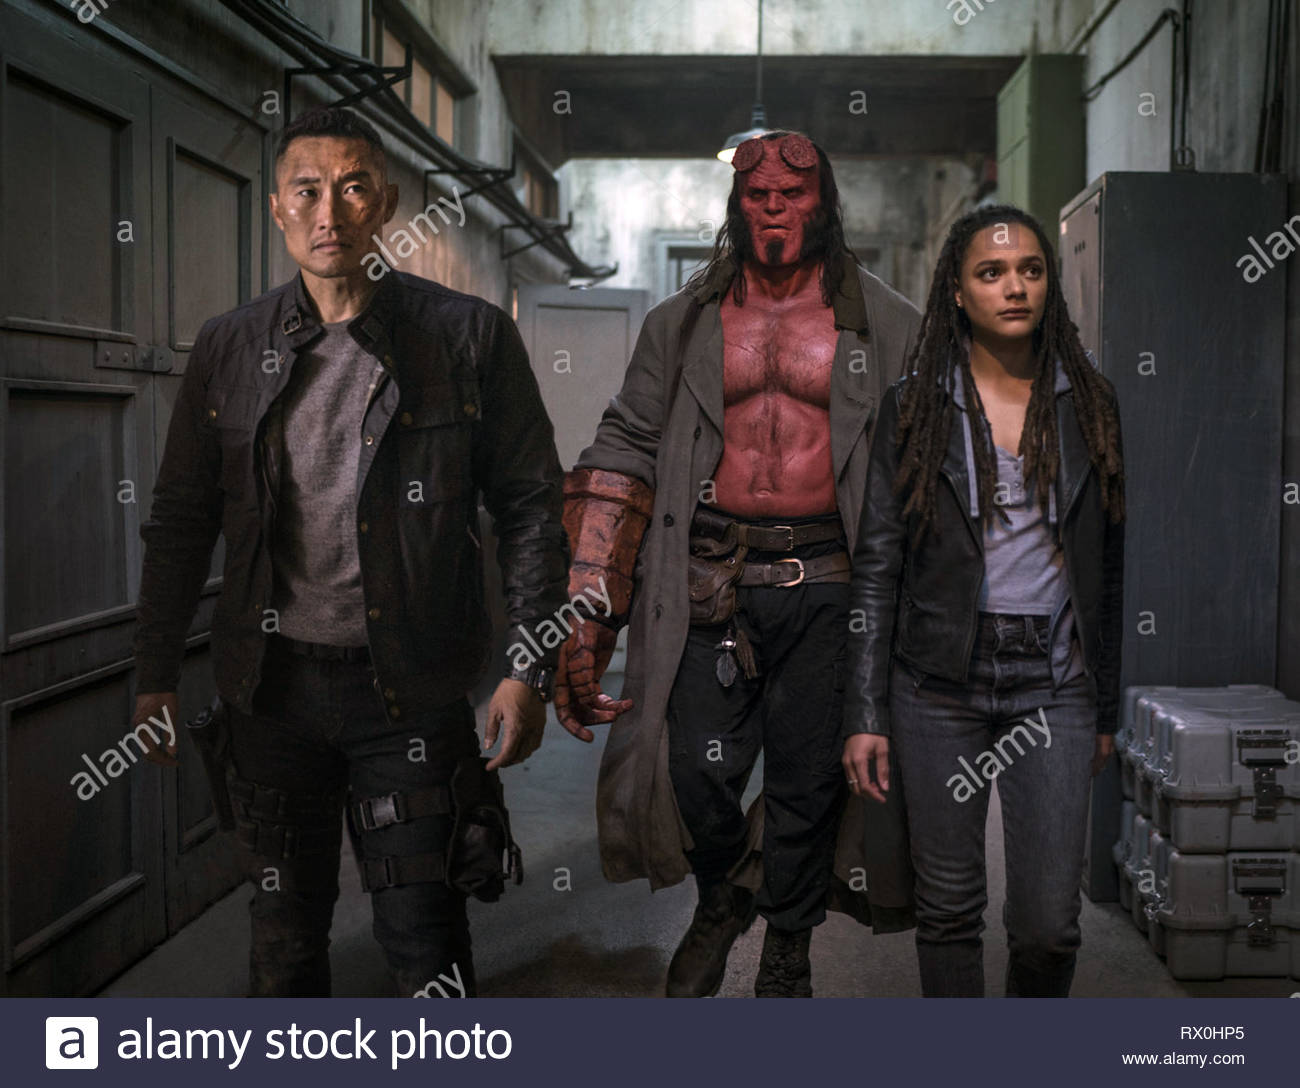 Hellboy II: The Golden Army is a 2008 American supernatural superhero film based on the fictional character Hellboy created by Mike Mignola. The film was written and directed by Guillermo del Toro and is a sequel to the 2004 film Hellboy, which del Toro also directed. Ron Perlman reprises his starring role as the eponymous character.    This photograph is supplied for editorial use only and is the copyright of the film company and/or the designated photographer assigned by the film or production company. Stock Photo